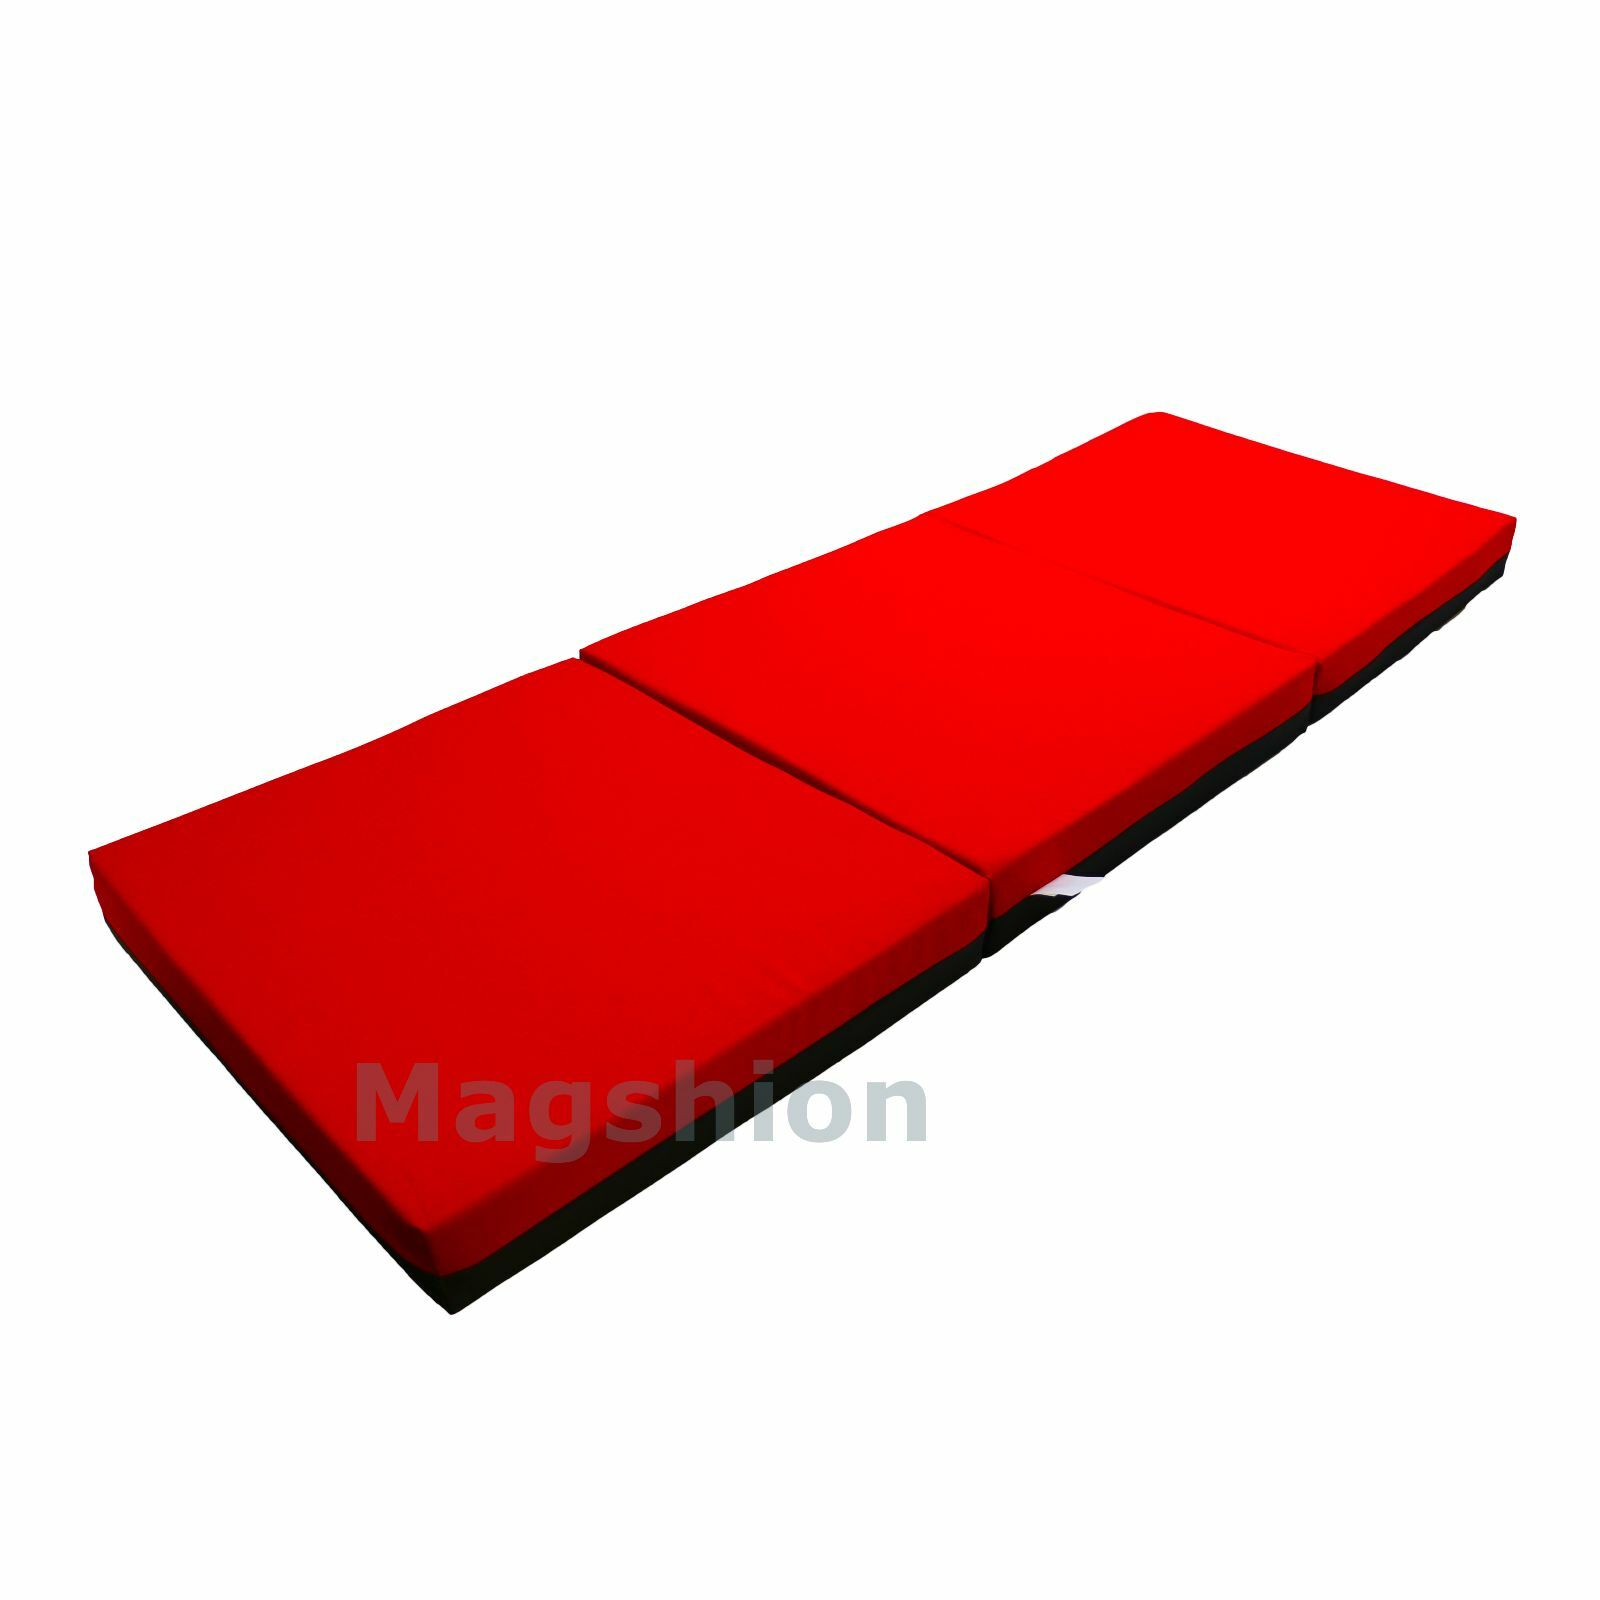 4 Inch Memory Foam Firm Mattress Trifolding Bed Pad Floor